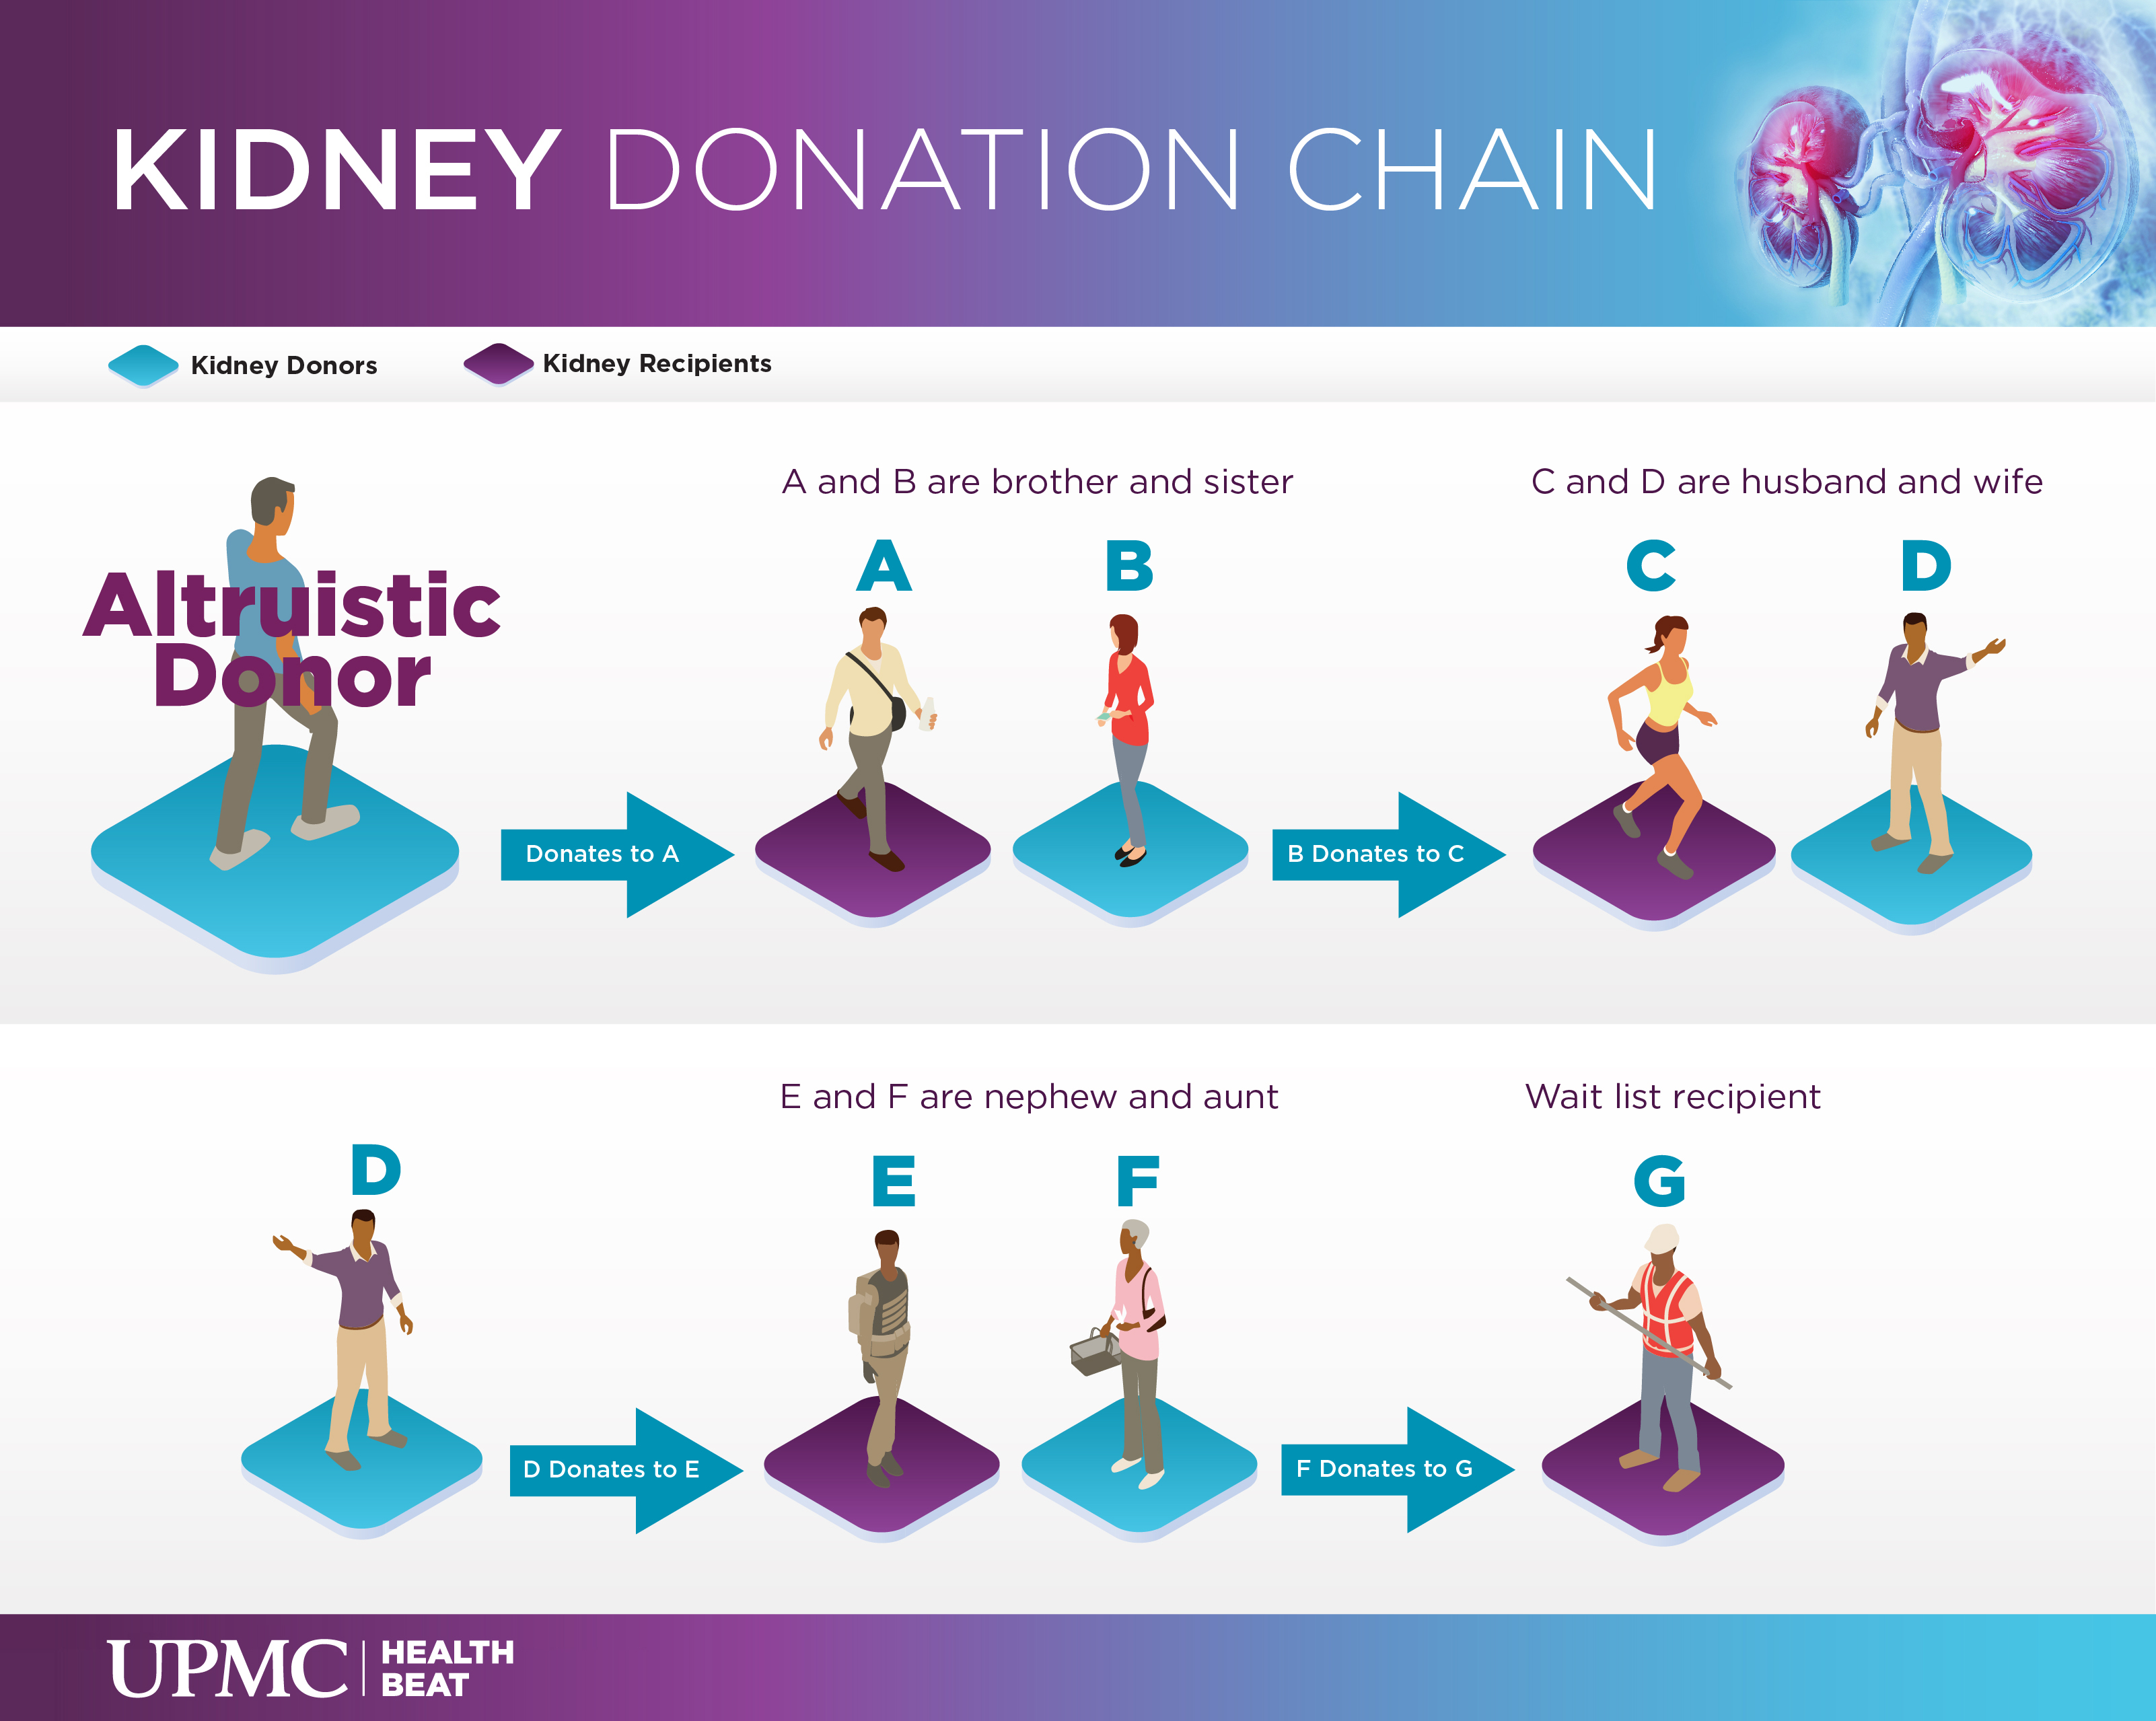 Learn more about kidney donation chains.